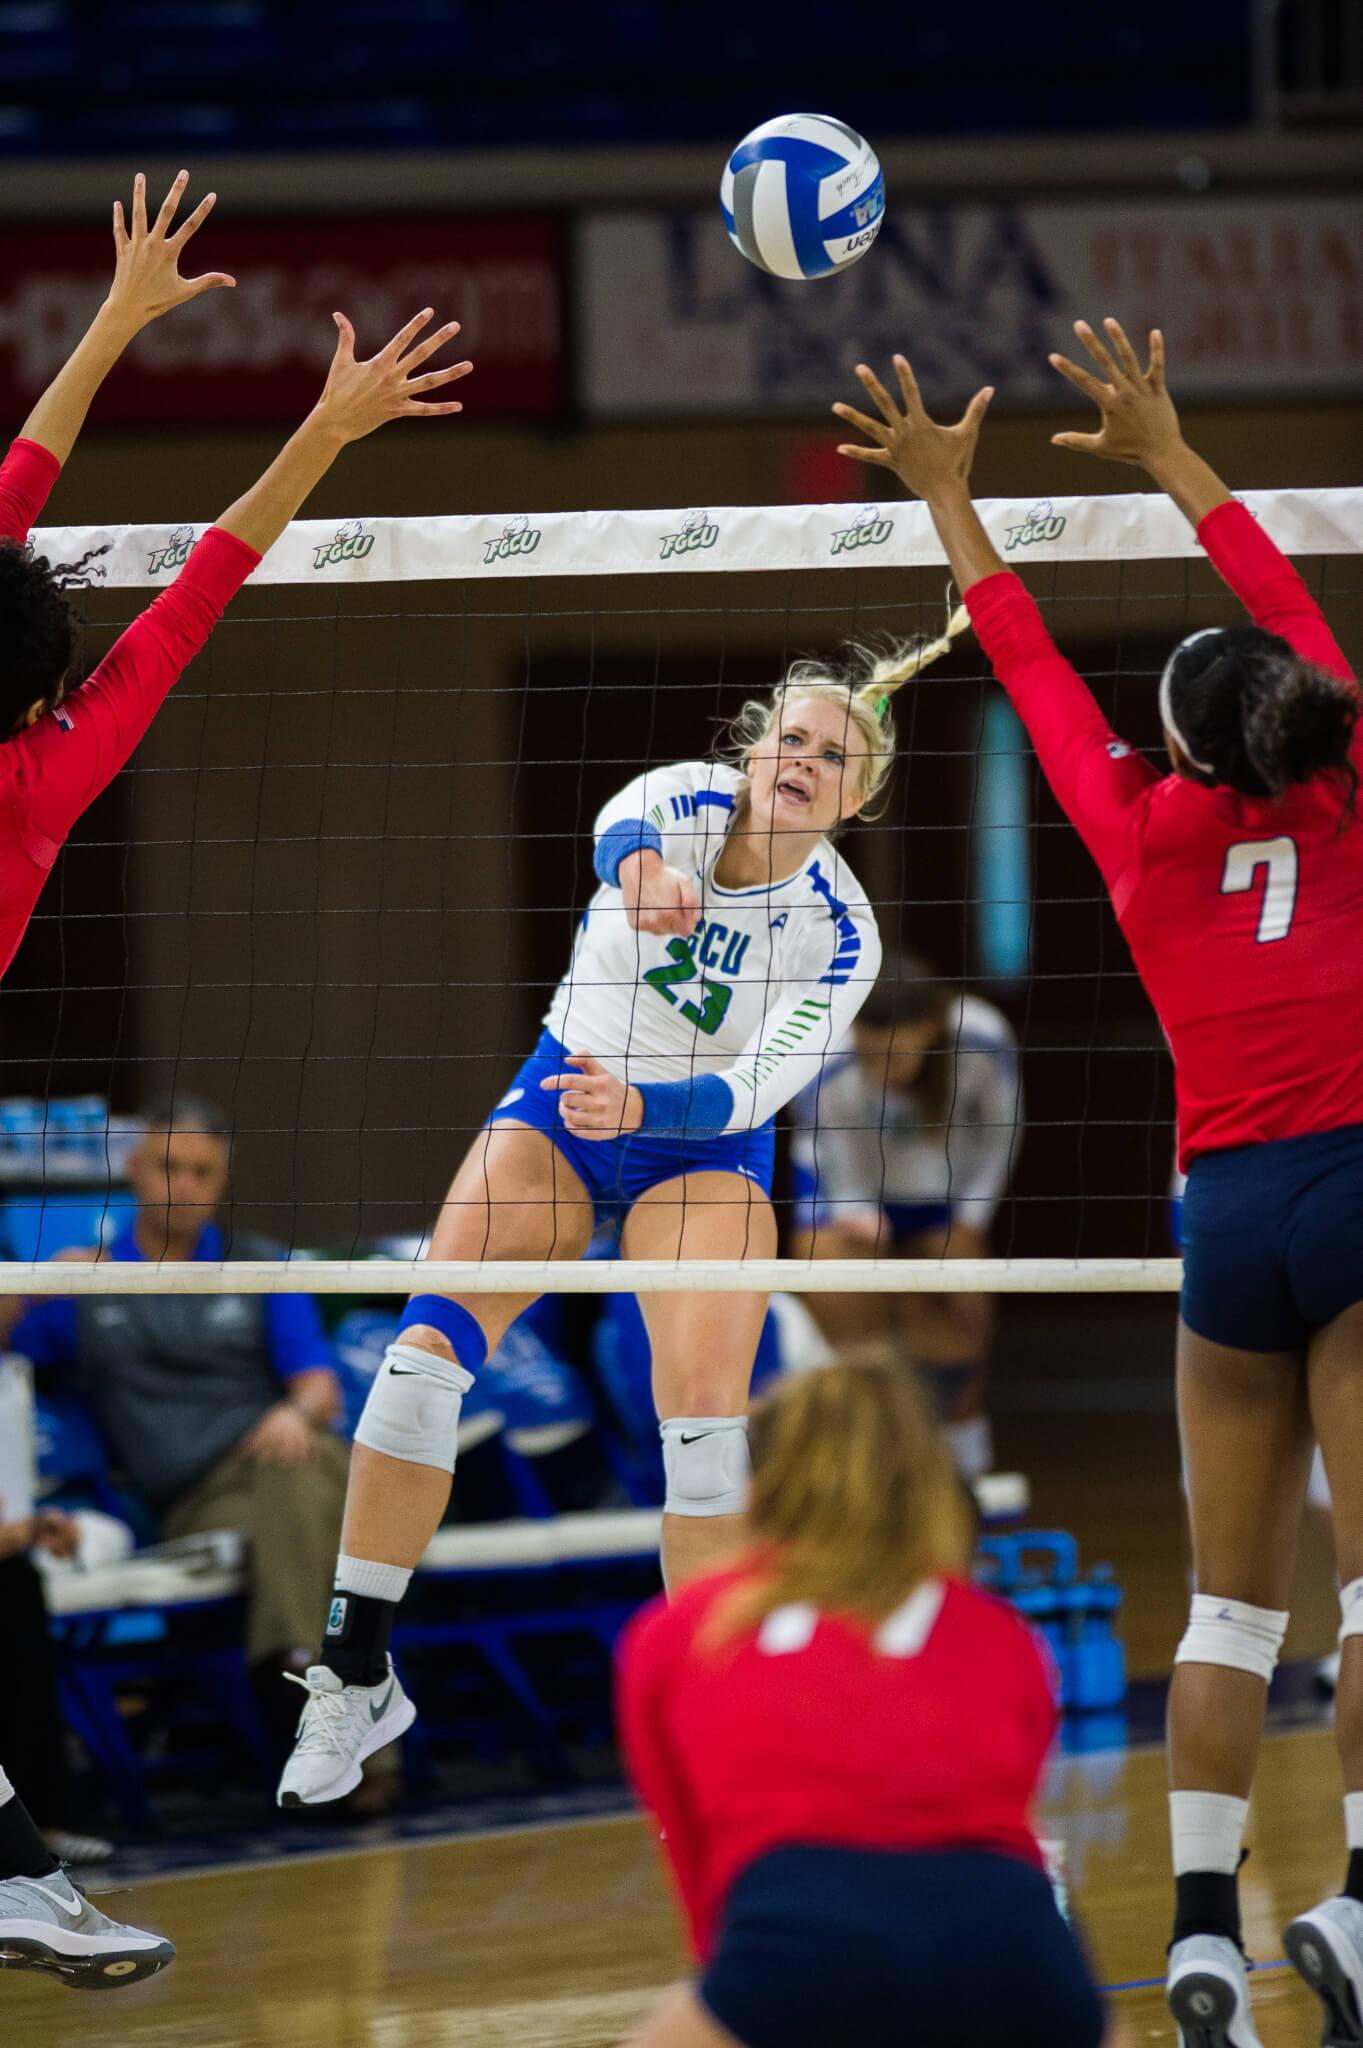 FGCU volleyball extends win streak to 13 with 3-0 win ove Bethune-Cookman